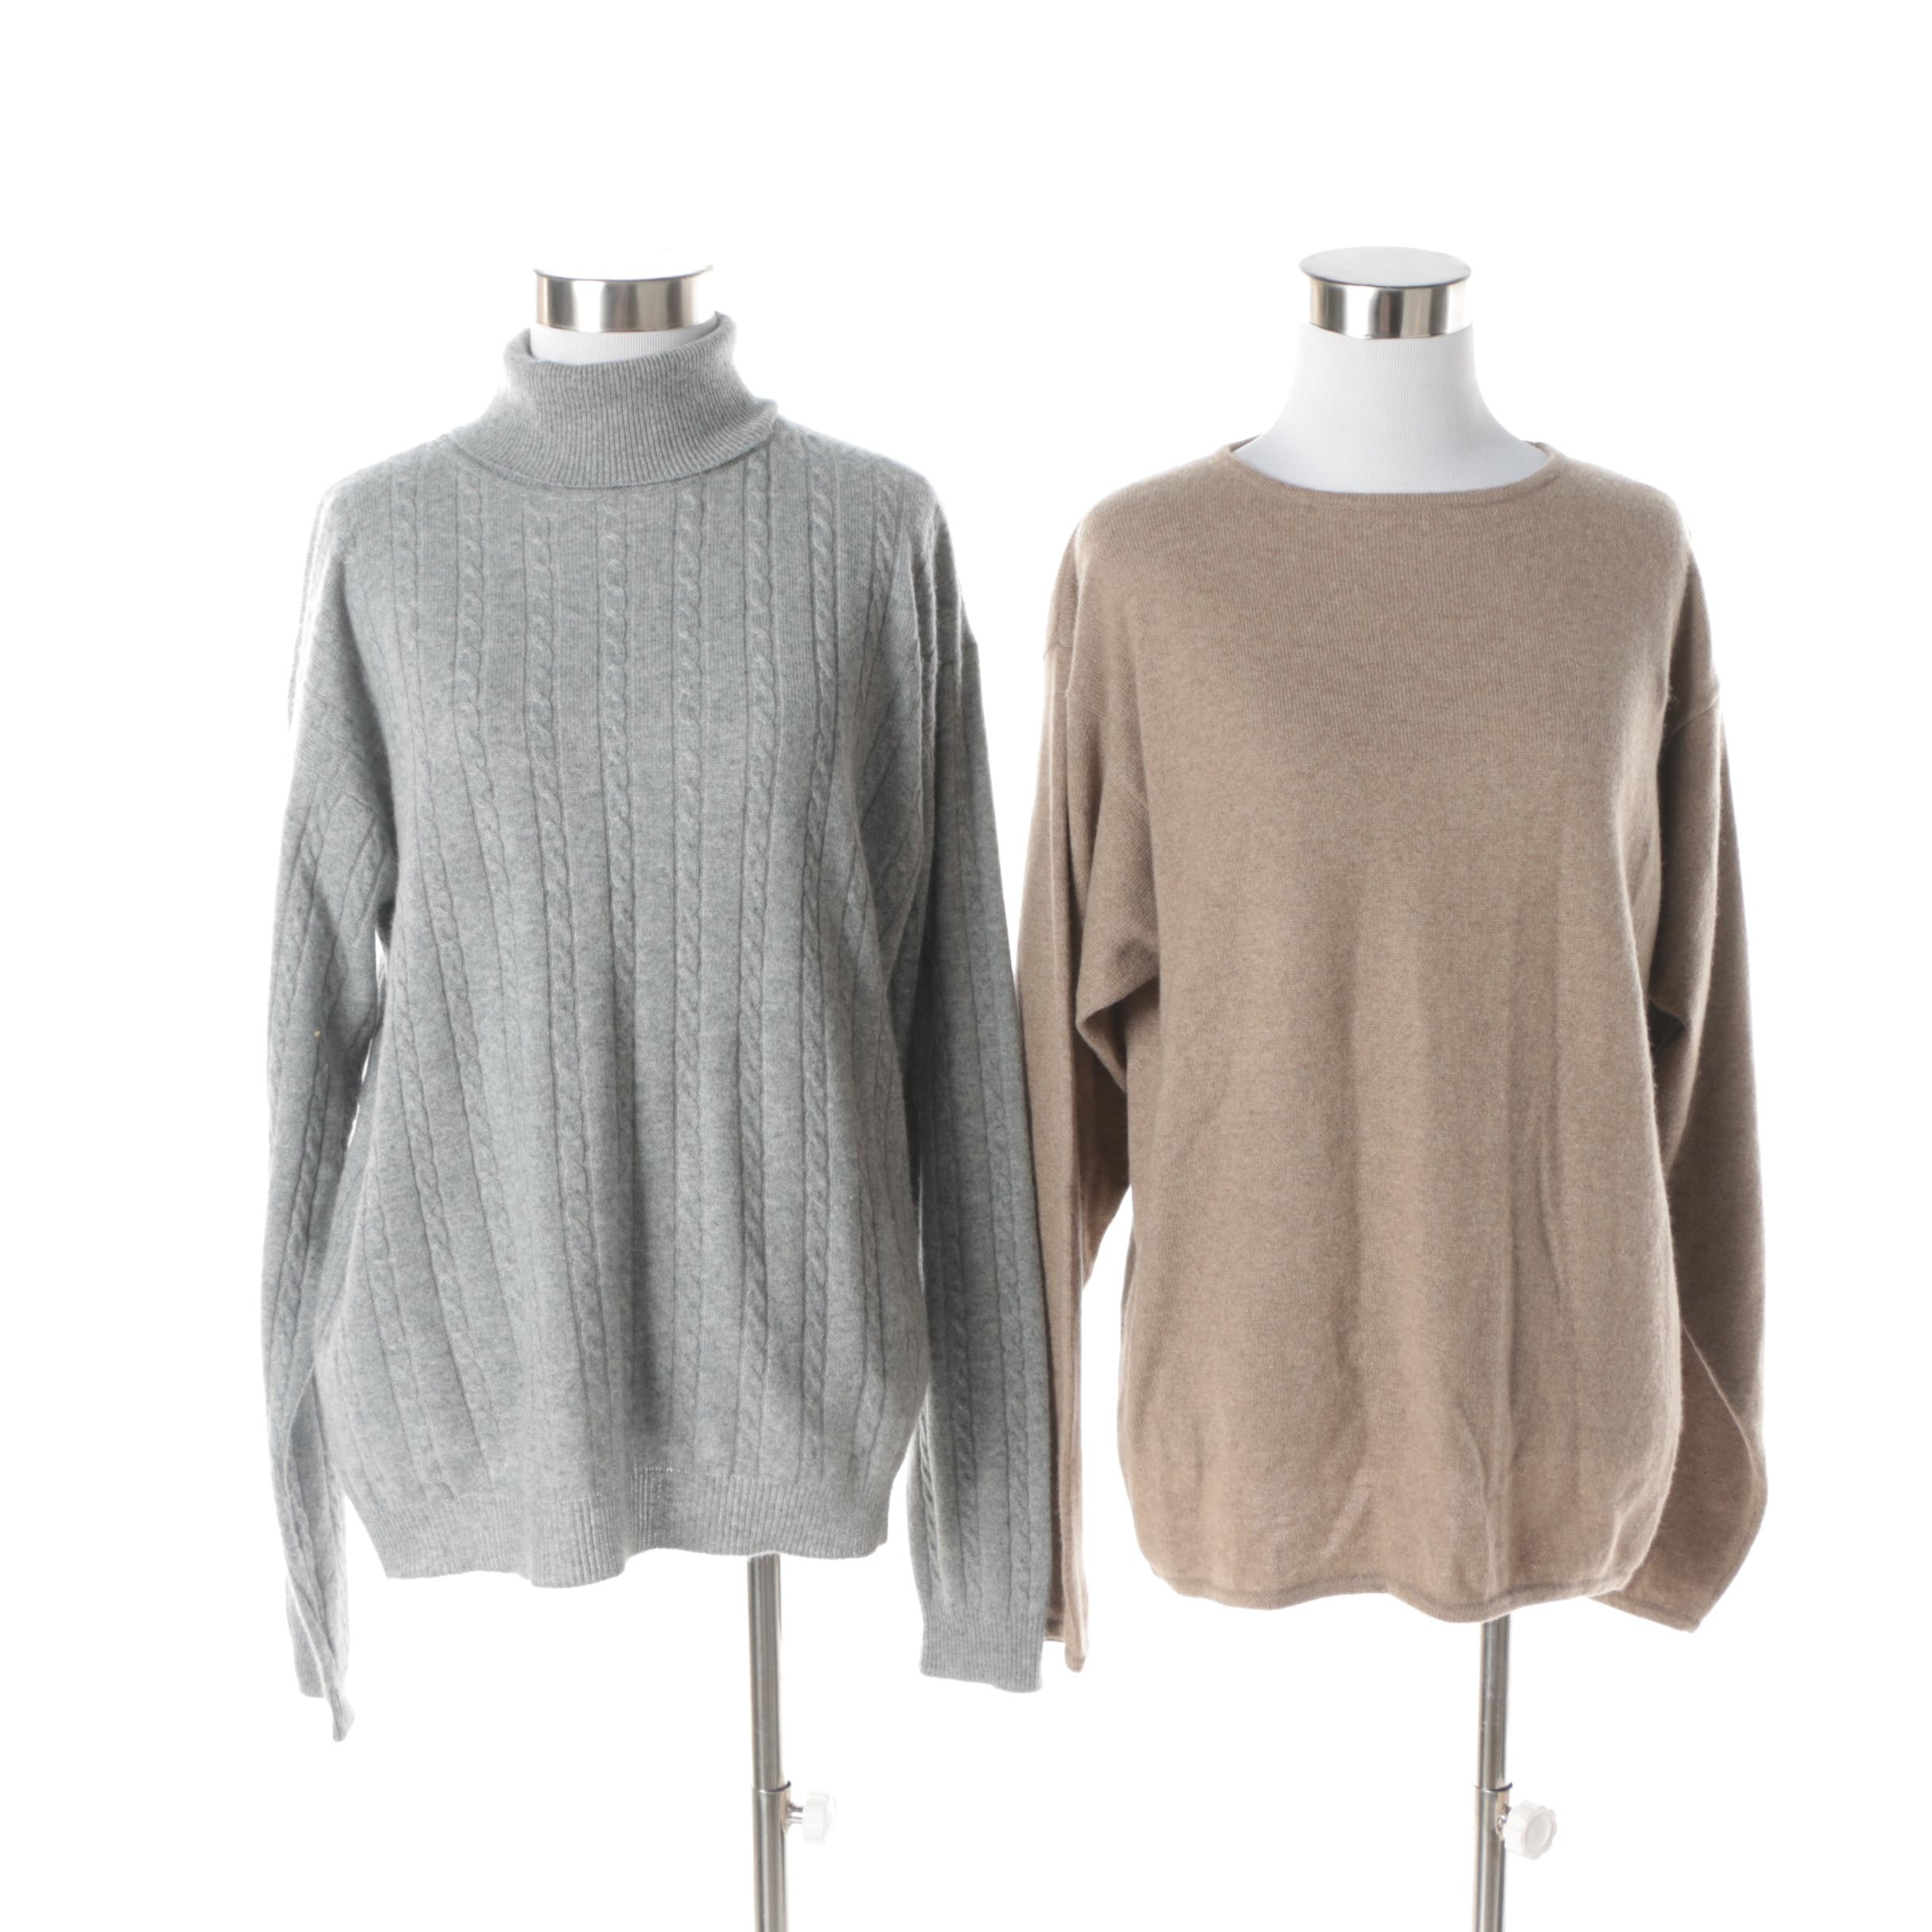 Two Womens Cashmere Sweaters